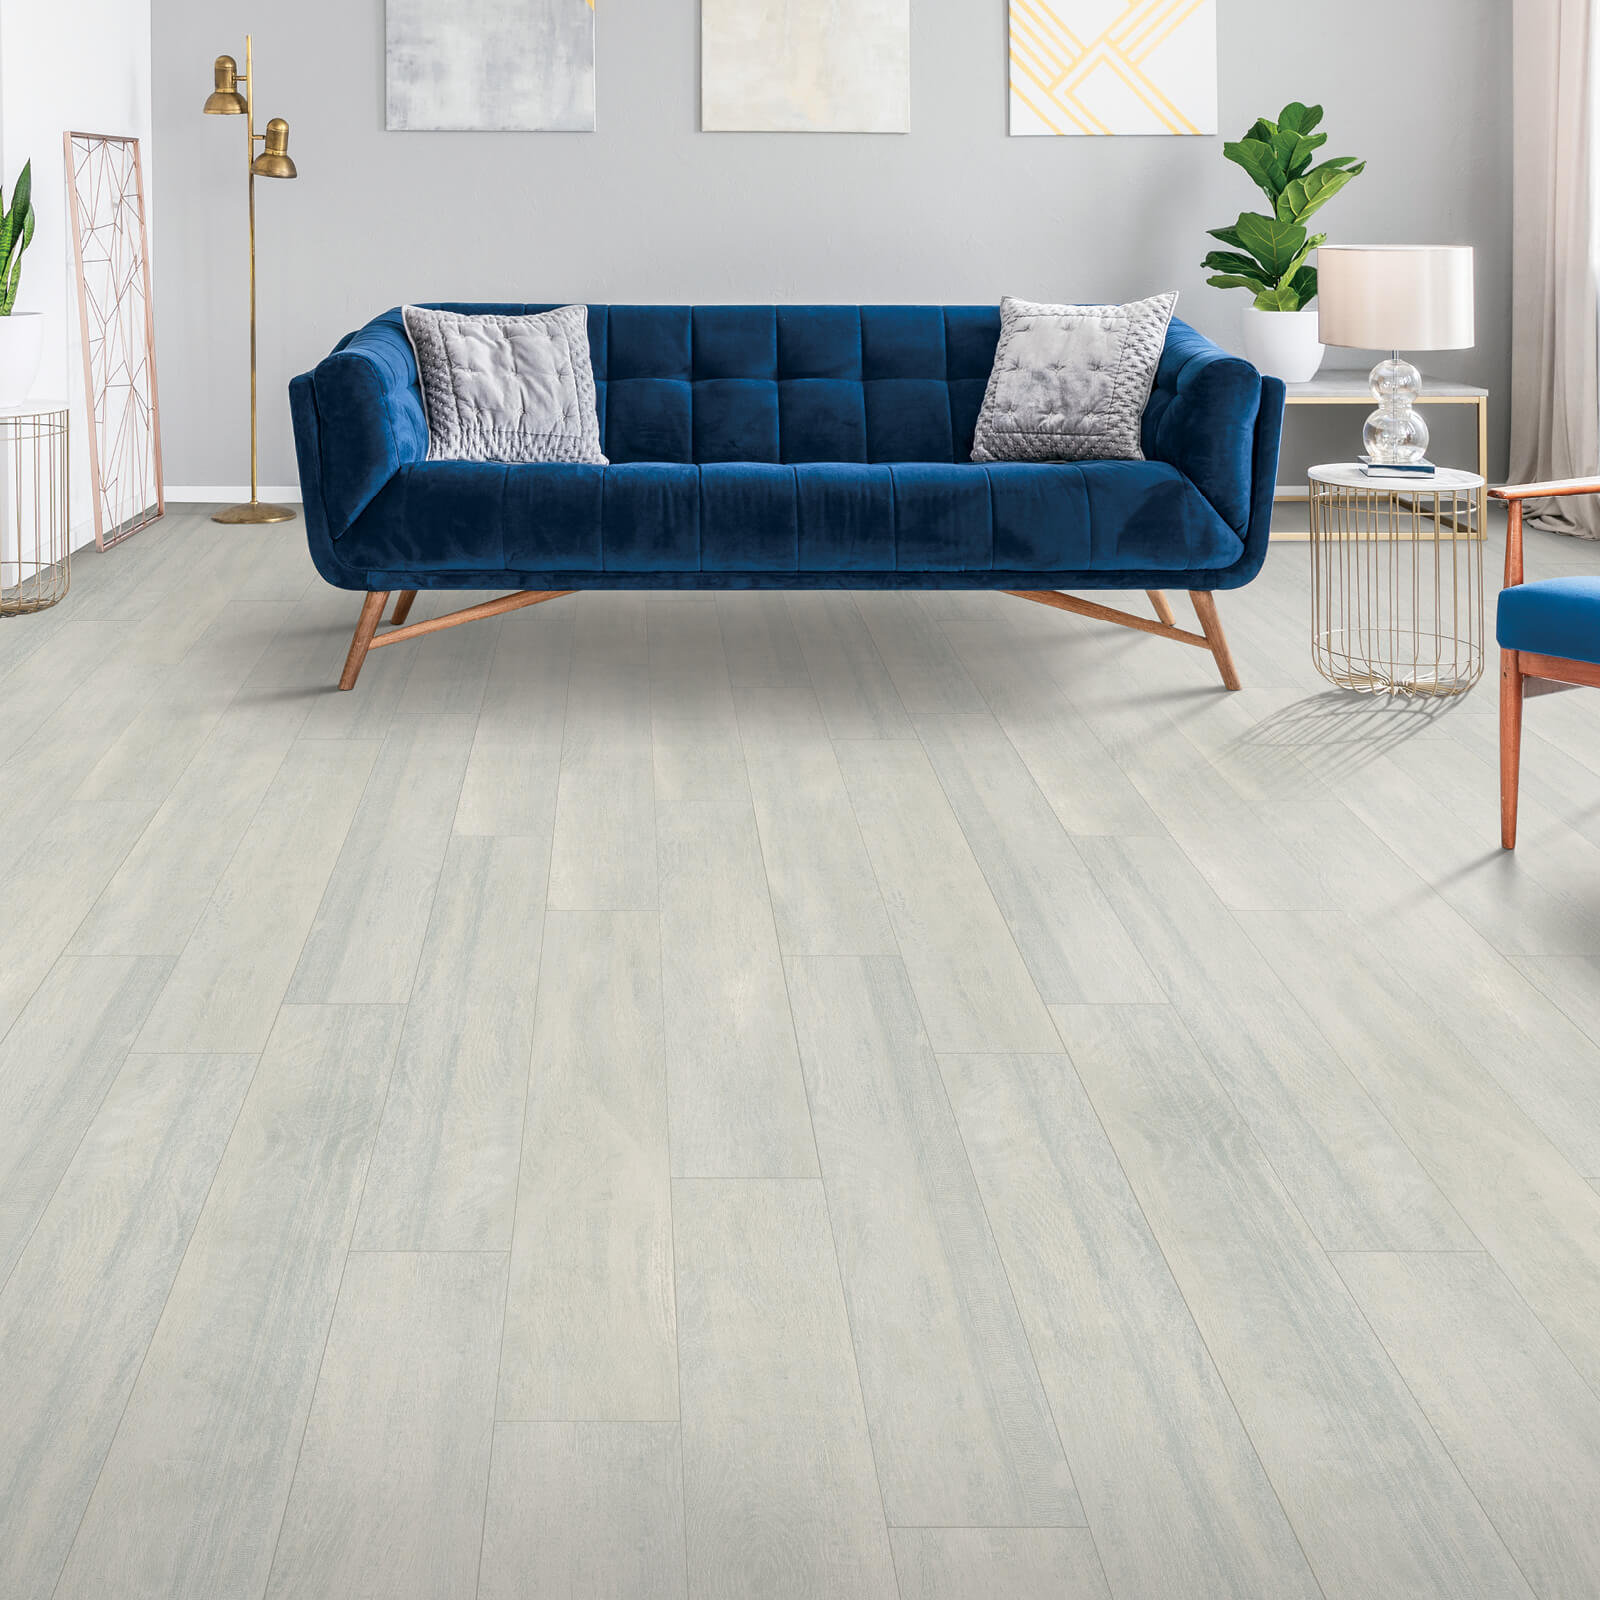 Blue couch on Laminate flooring | Dolphin Carpet & Tile